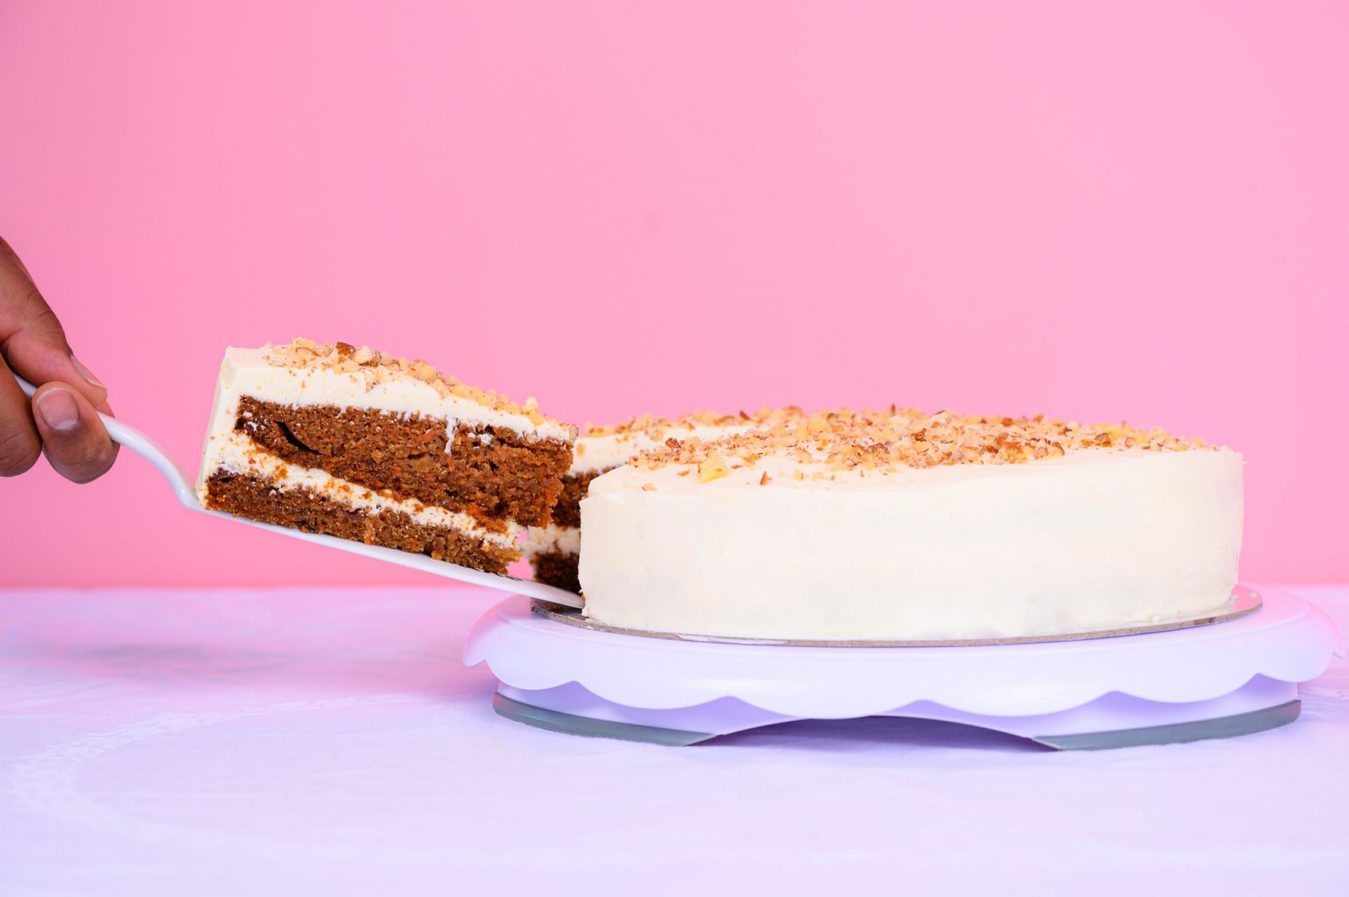 White cake on a table against a pink background